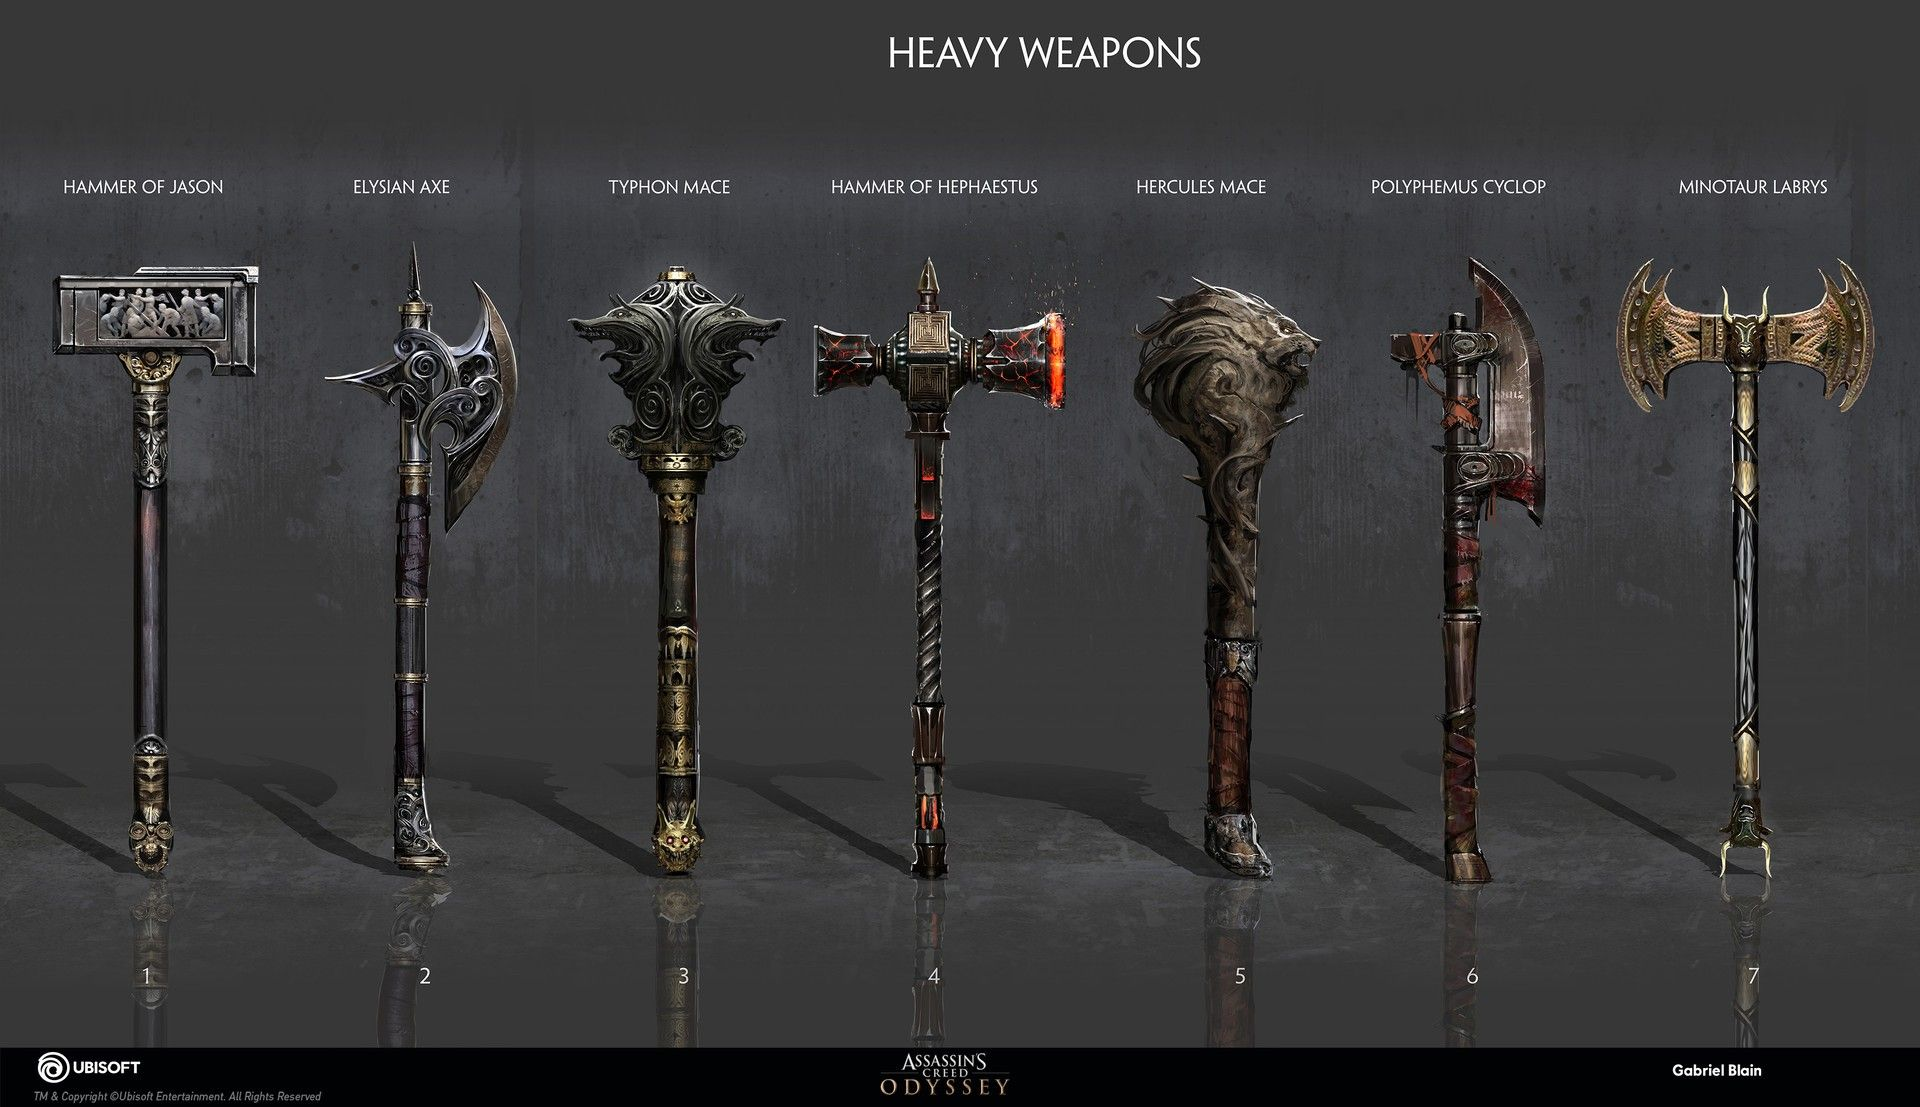 Pin By Brandon Miller On Weapon Design Assassins Creed